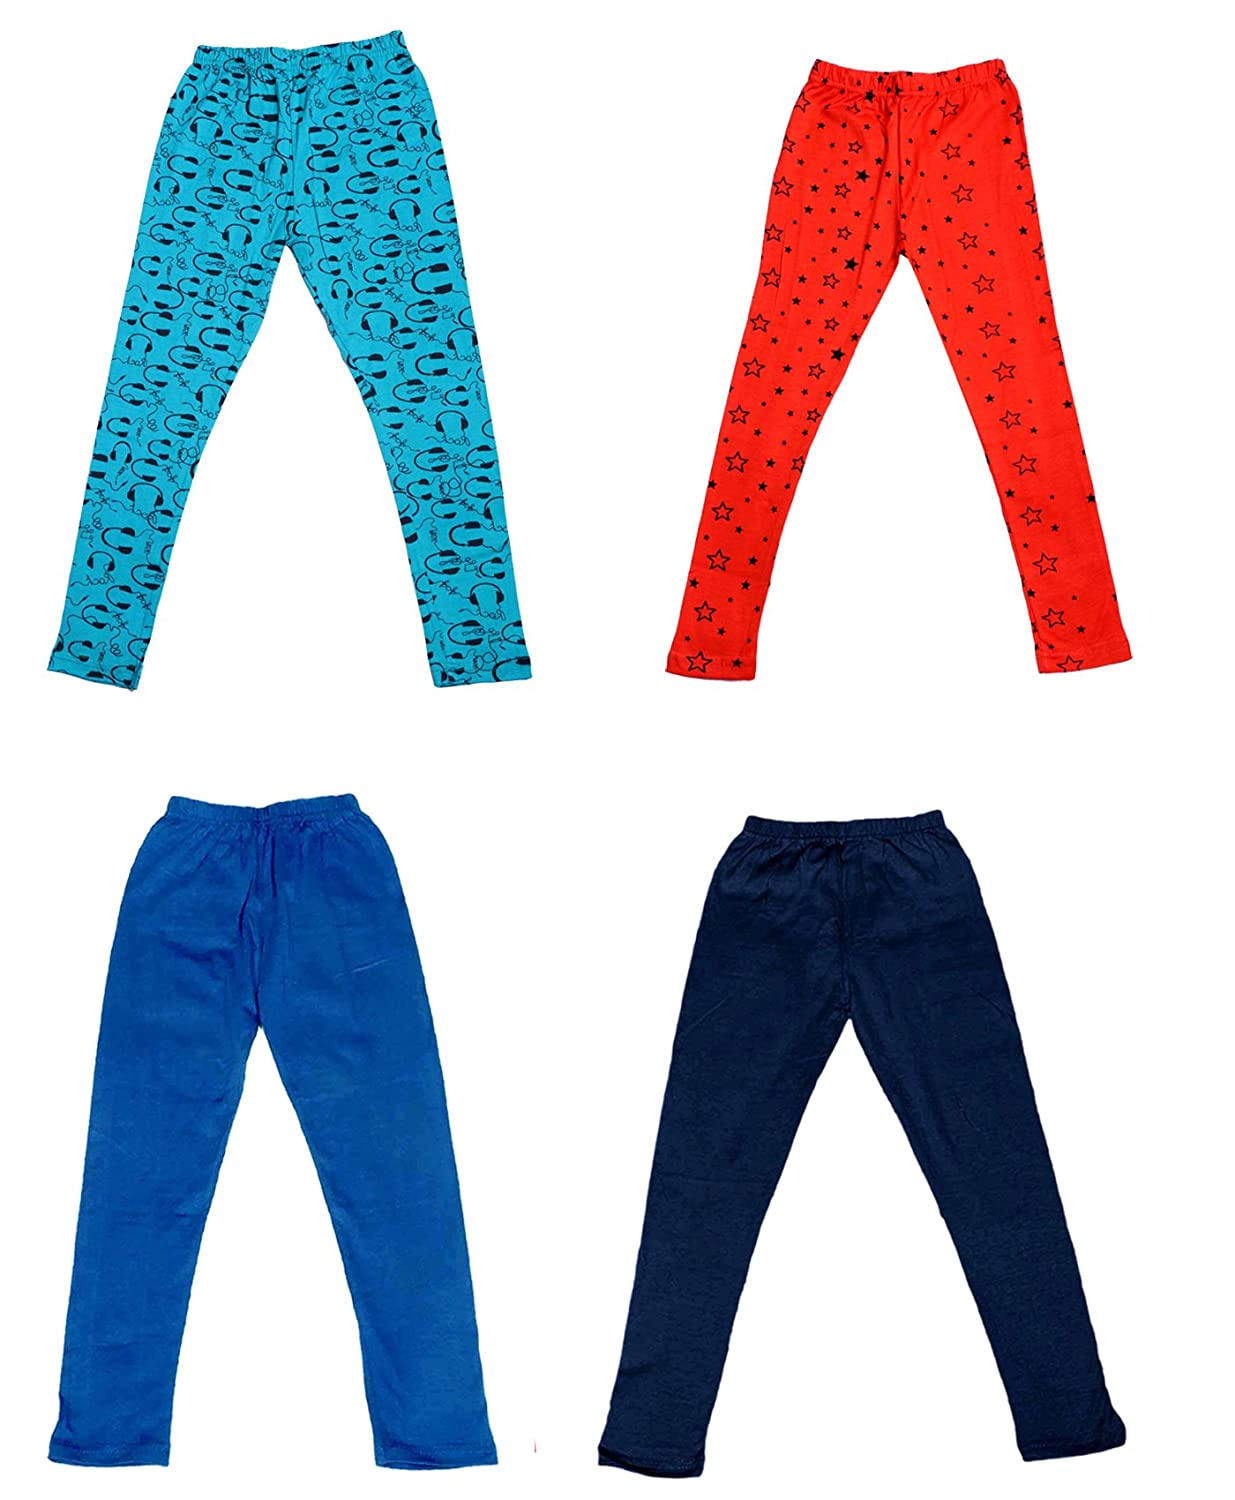 Pack Of 4 Indistar Girls 2 Cotton Solid Legging Pants /_Multicolor/_Size-9-10 Years/_71409101617-IW-P4-32 and 2 Cotton Printed Legging Pants